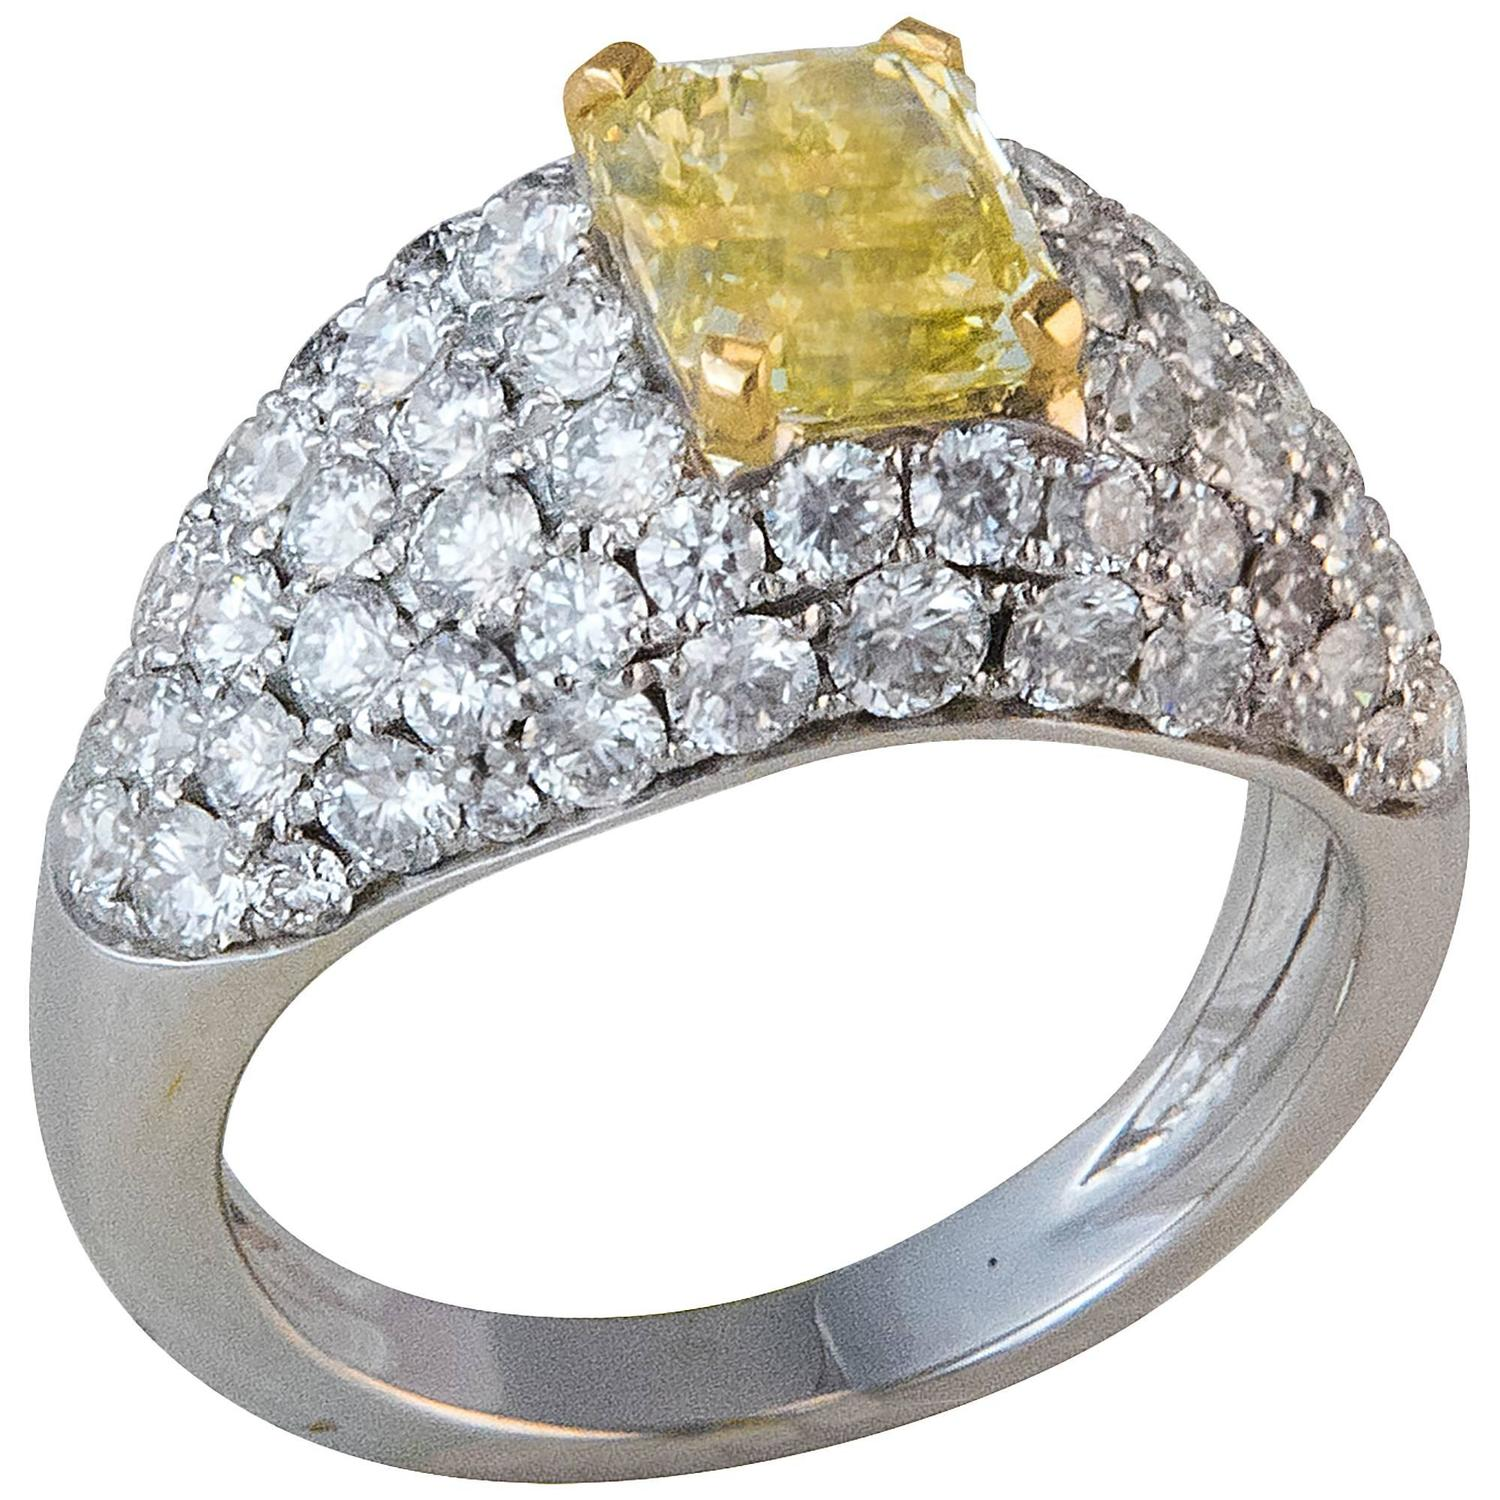 Fancy Yellow Diamond Ring For Sale at 1stdibs